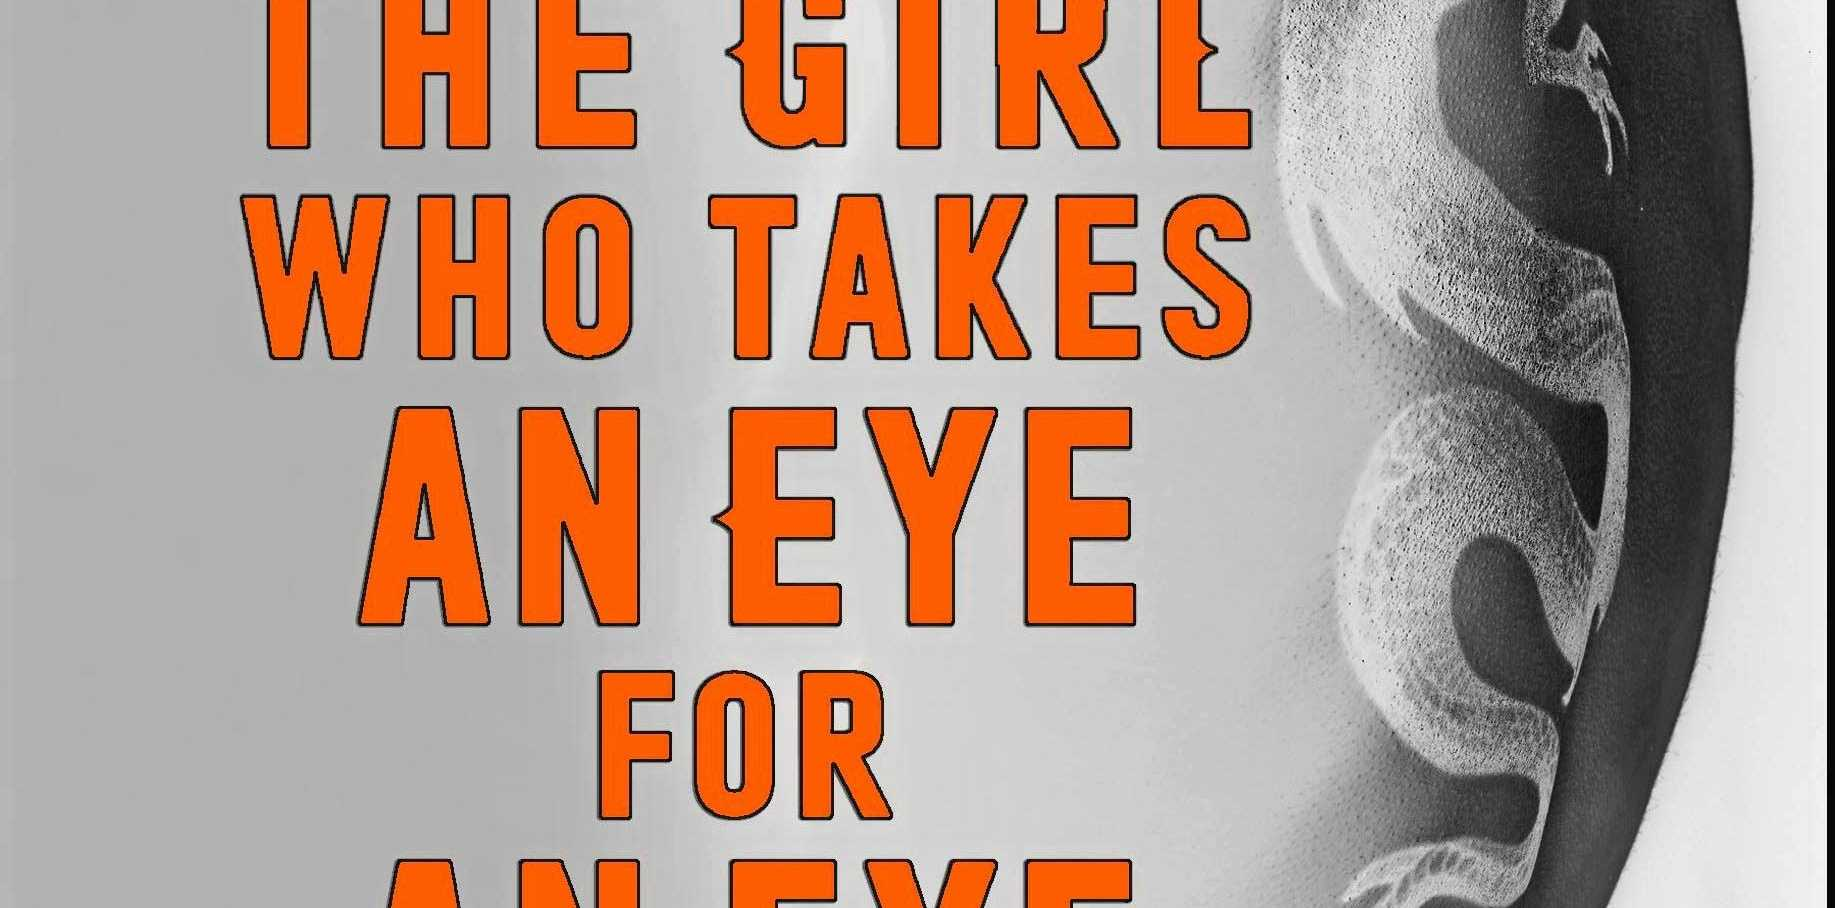 BOOK REVIEW: Another brilliant novel, continuing the anti-heroine saga of Lisbeth Salander.